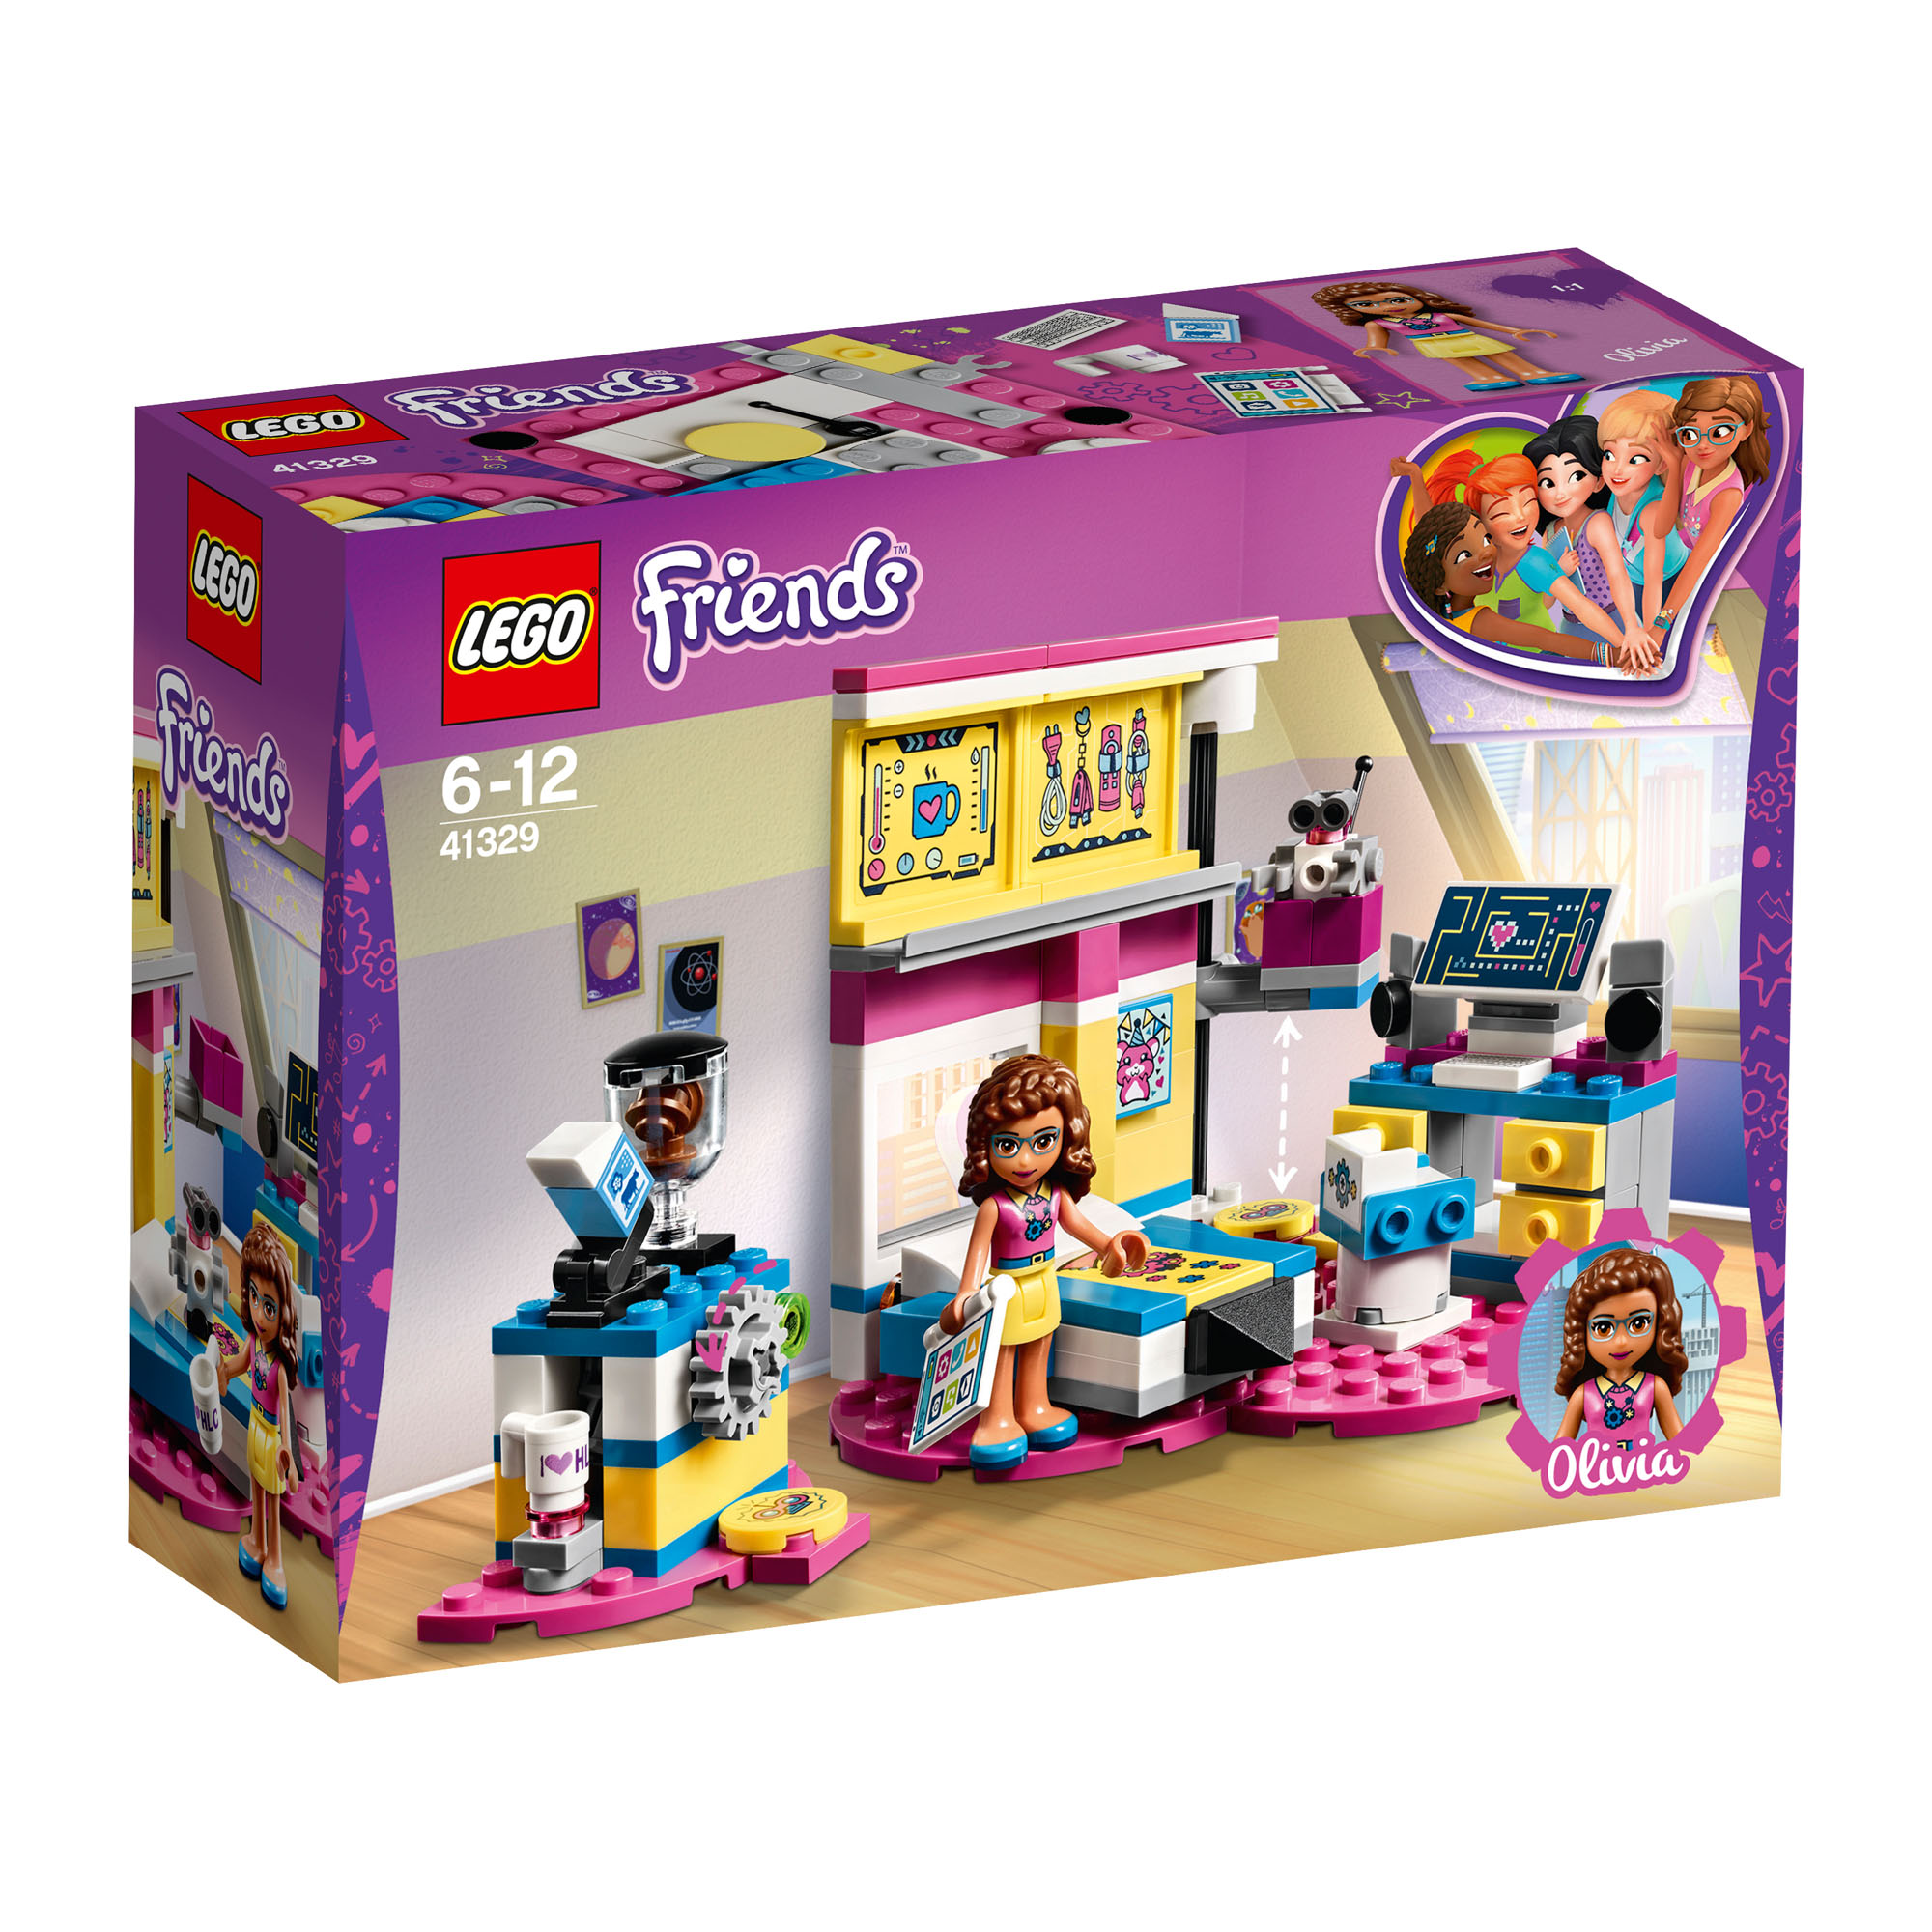 41329 Lego Friends Olivias Deluxe Bedroom 163 Pieces Age 6 New